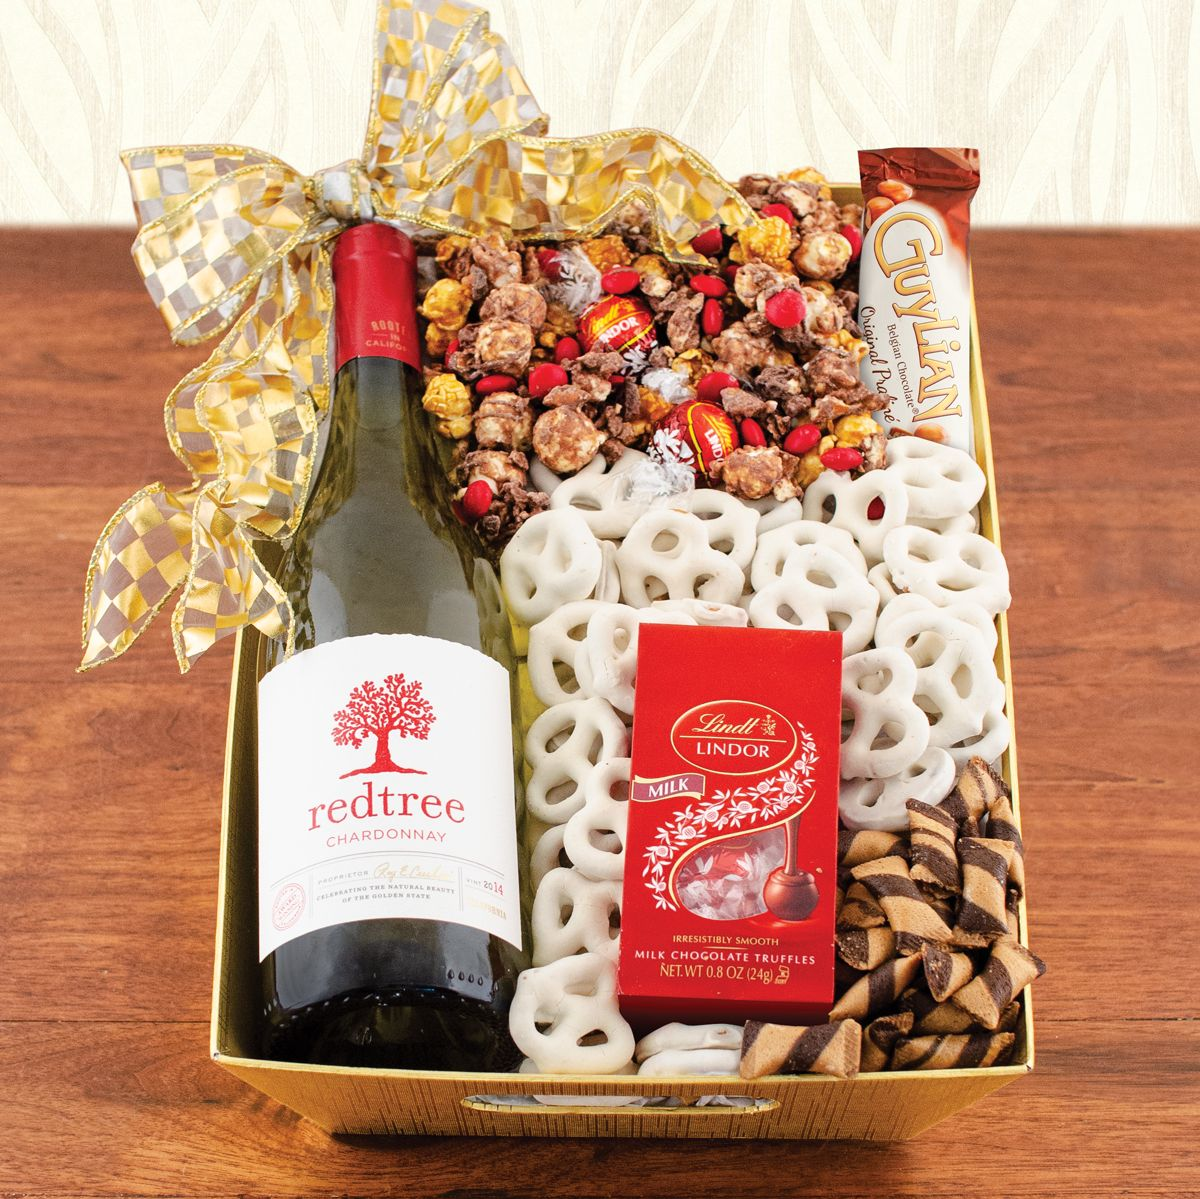 39 99 Pour On The Good Cheer With Redtree Chardonnay And A Festive Mix Of Gourmet Sweets Holiday Wine Gift Red Wine Gifts Red Wine Gift Basket